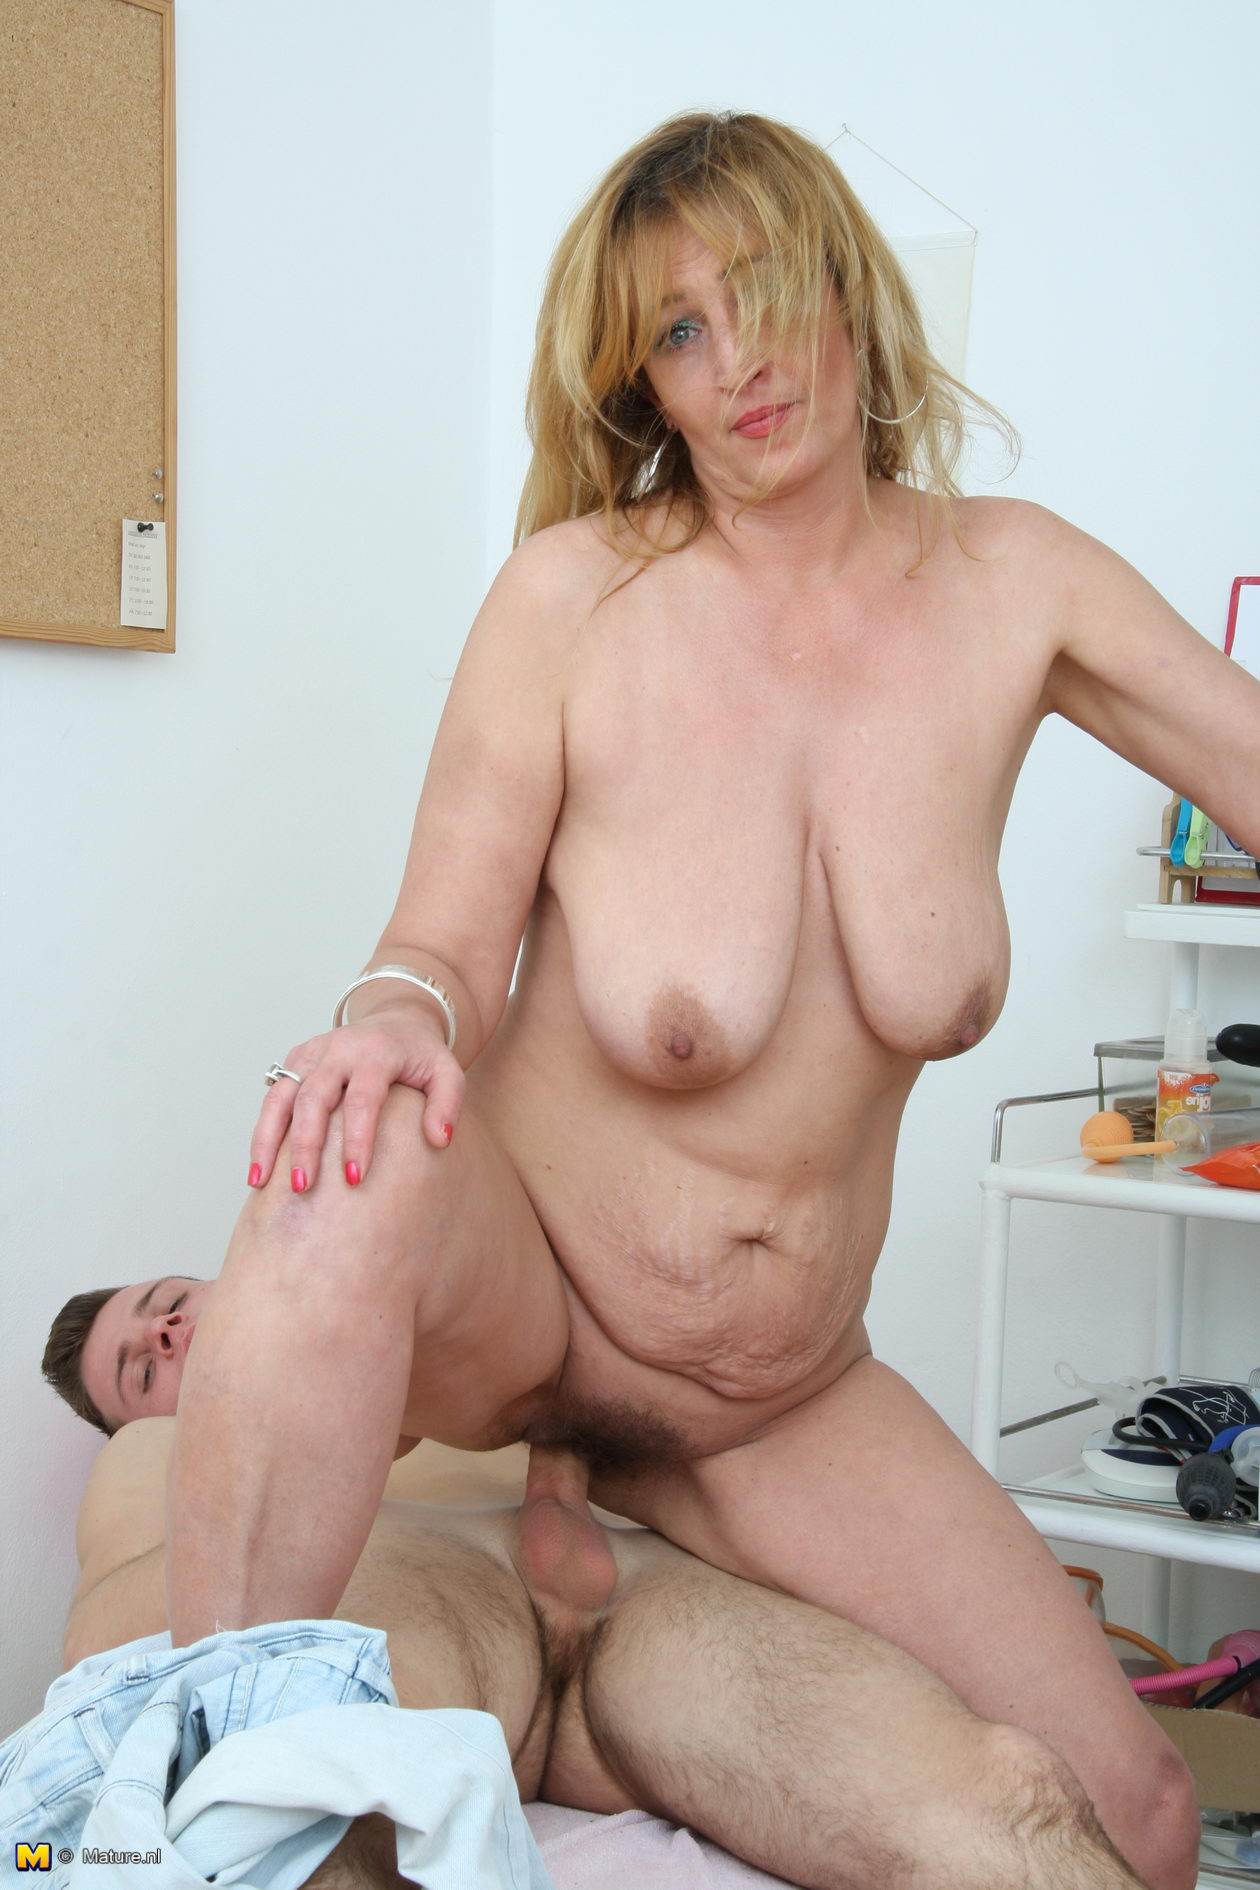 Click here to see more at Mature NL! Click here to see more at Mature ...